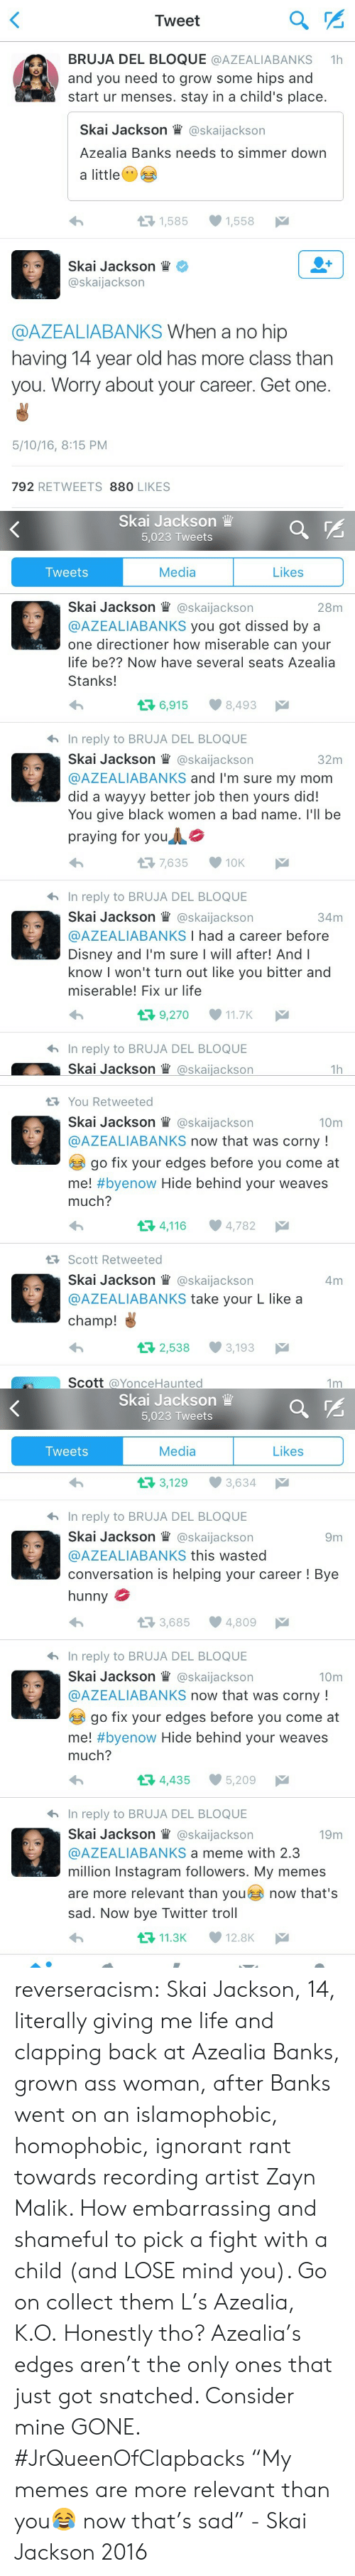 Instagram Followers: Tweet  BRUJA DEL BLOQUE @AZEALIABANKS 1  and you need to grow some hips and  start ur menses. stay in a child's place.  Skal Jackson眥@ska.Jackson  Azealia Banks needs to simmer down  a little  1,585  1,558  Skal Jackson眥*  @skaijackson  @AZEALIABANKS When a no hip  having 14 year old has more class than  you. Worry about your career. Get one.  5/10/16, 8:15 PM  792 RETWEETS 880 LIKES   Skai Jackson  5,023 Tweets  Tweets  Media  Likes  Skal Jackson @ska.Jackson  @AZEALIABANKS you got dissed by a  one directioner how miserable can your  life be?? Now have several seats Azealia  Stanks!  28m  6,915  8,493  hIn reply to BRUJA DEL BLOQUE  Skai Jackson il @skaijackson  @AZEALIABANKS and I'm sure my mom  did a wayyy better job then yours did!  You give black women a bad name. l'll be  praying for you  32m  7,635 10K  hIn reply to BRUJA DEL BLOQUE  Skal Jackson眥@ska.Jackson  @AZEALIABANKS I had a career before  Disney and I'm sure I will after! Andl  know I won't turn out like you bitter and  miserable! Fix ur life  34m  9,270 11.7K  hIn reply to BRUJA DEL BLOQUE  Skal Jackson眥@skal.ackson  1h   You Retweeted  Skal Jackson眥@ska.Jackson  @AZEALIABANKS now that was corny!  10m  go fix your edges before you come at  me! #byenow Hide behind your weaves  much?  4,116 4,782  RScott Retweeted  Skai Jackson W @skaijackson  @AZEALIABANKS take your L like a  champ!  4m  2,538 3,193  Scott @YonceHaunted  1m   Skai Jackson  5,023 Tweets  Tweets  Media  Likes  3,129 3,634  hIn reply to BRUJA DEL BLOQUE  Skai Jackson l @skaijackson  @AZEALIABANKS this wasted  conversation is helping your career! Bye  hunny  9m  3,685 4,809  hIn reply to BRUJA DEL BLOQUE  Skai Jackson lWl @skaijackson  @AZEALIABANKS now that was corny!  10m  go fix your edges before you come at  me! #byenow Hide behind your weaves  much?  34,435 5,209  In reply to BRUJA DEL BLOQUE  Skai Jackson W @skaijackson  @AZEALIABANKS a meme with 2.3  million Instagram followers. My memes  are more relevant than